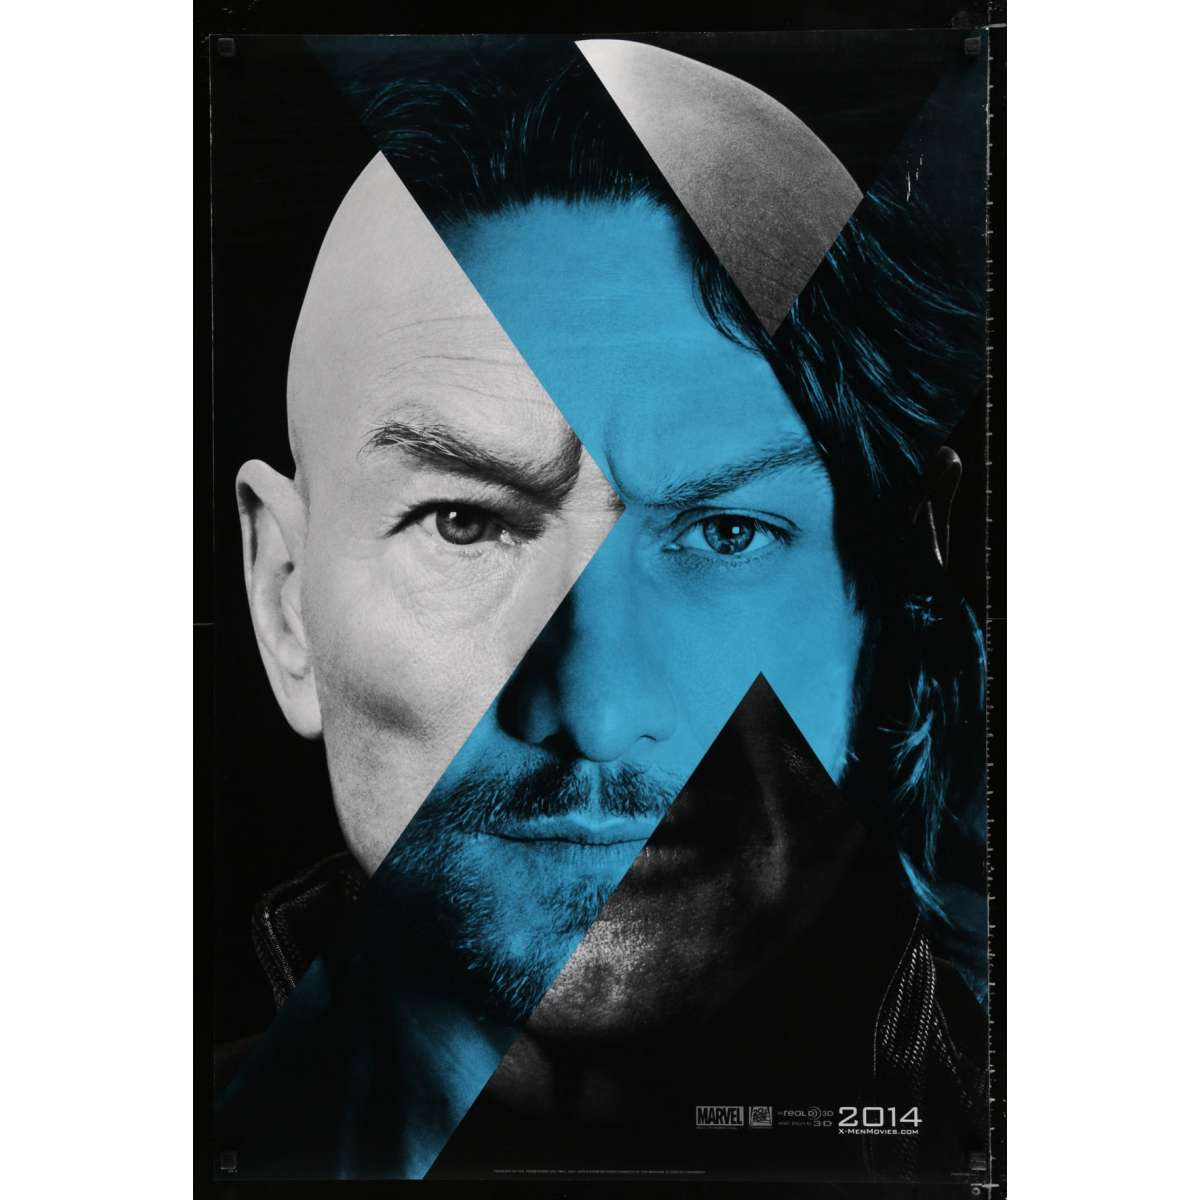 XMEN DAYS OF FUTURE PAST Movie Poster